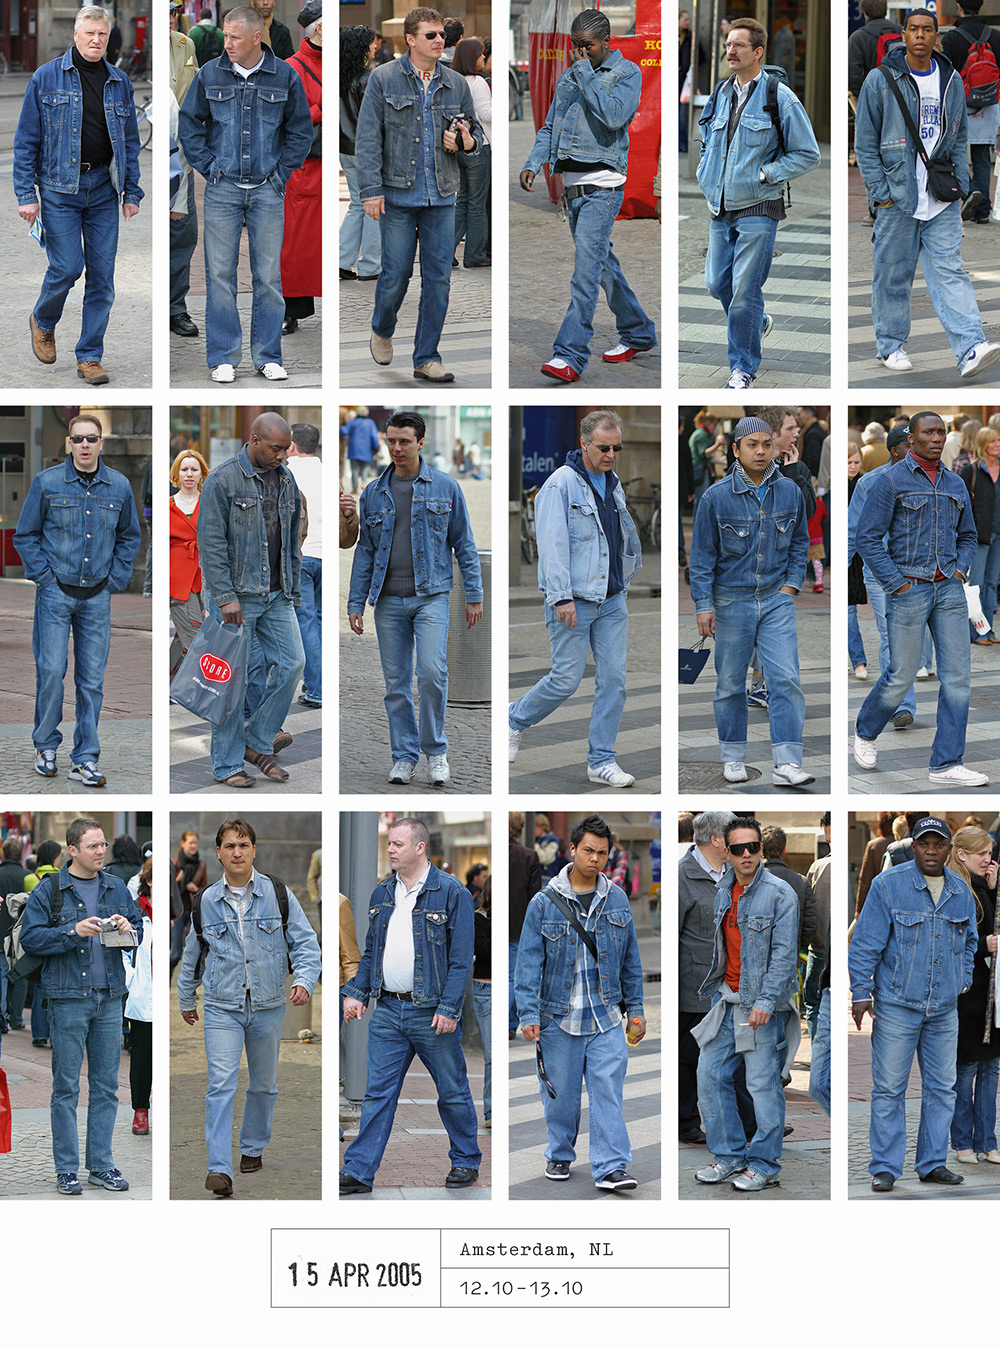 Dutch photographer shows us that we all dress exactly the same